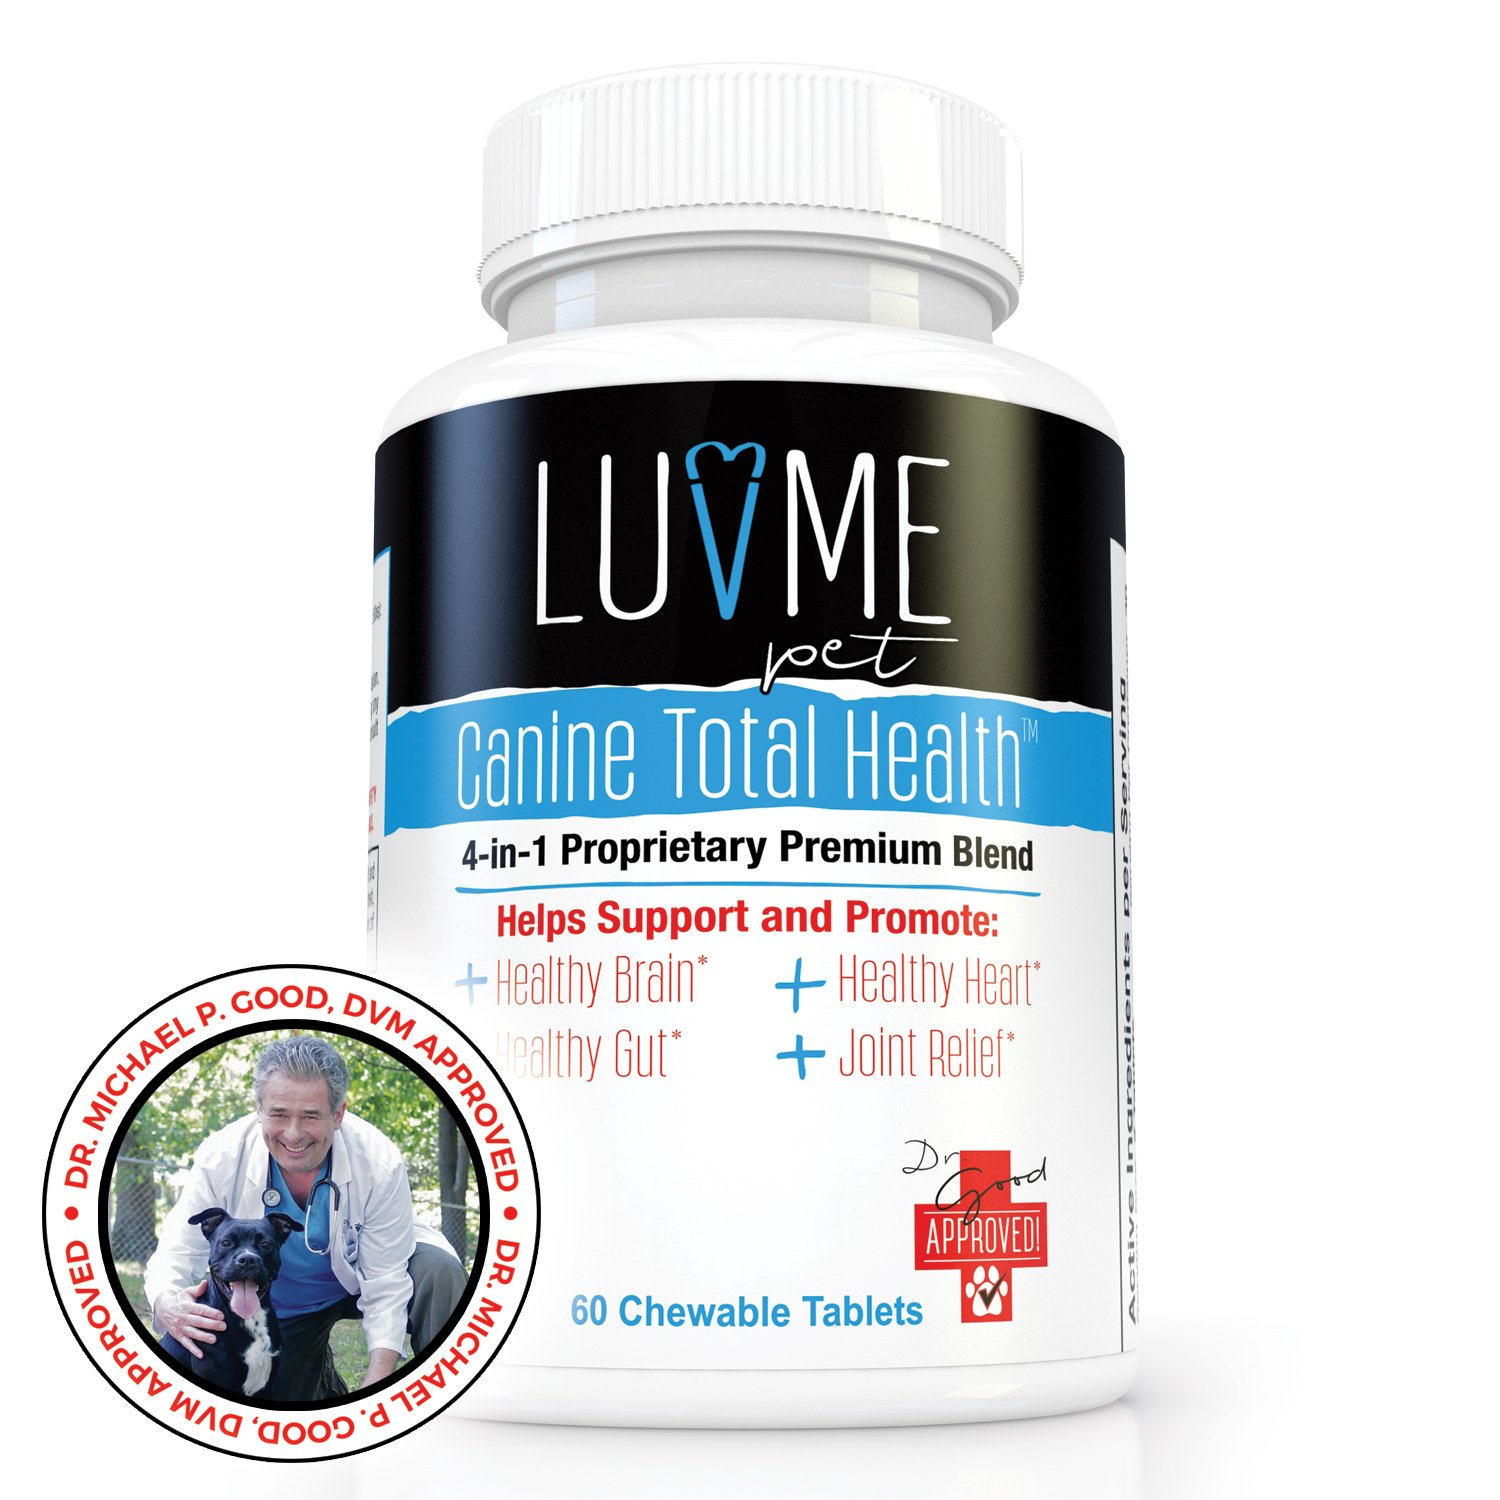 Probiotics For Dogs Canine Total Health By LuvMePet - Well Rounded Nutrient Based Supplement. Veterinarian Formulated With 4-1 Proprietary Blend Supporting Healthy Brain, Gut, Heart, Joint & Coat